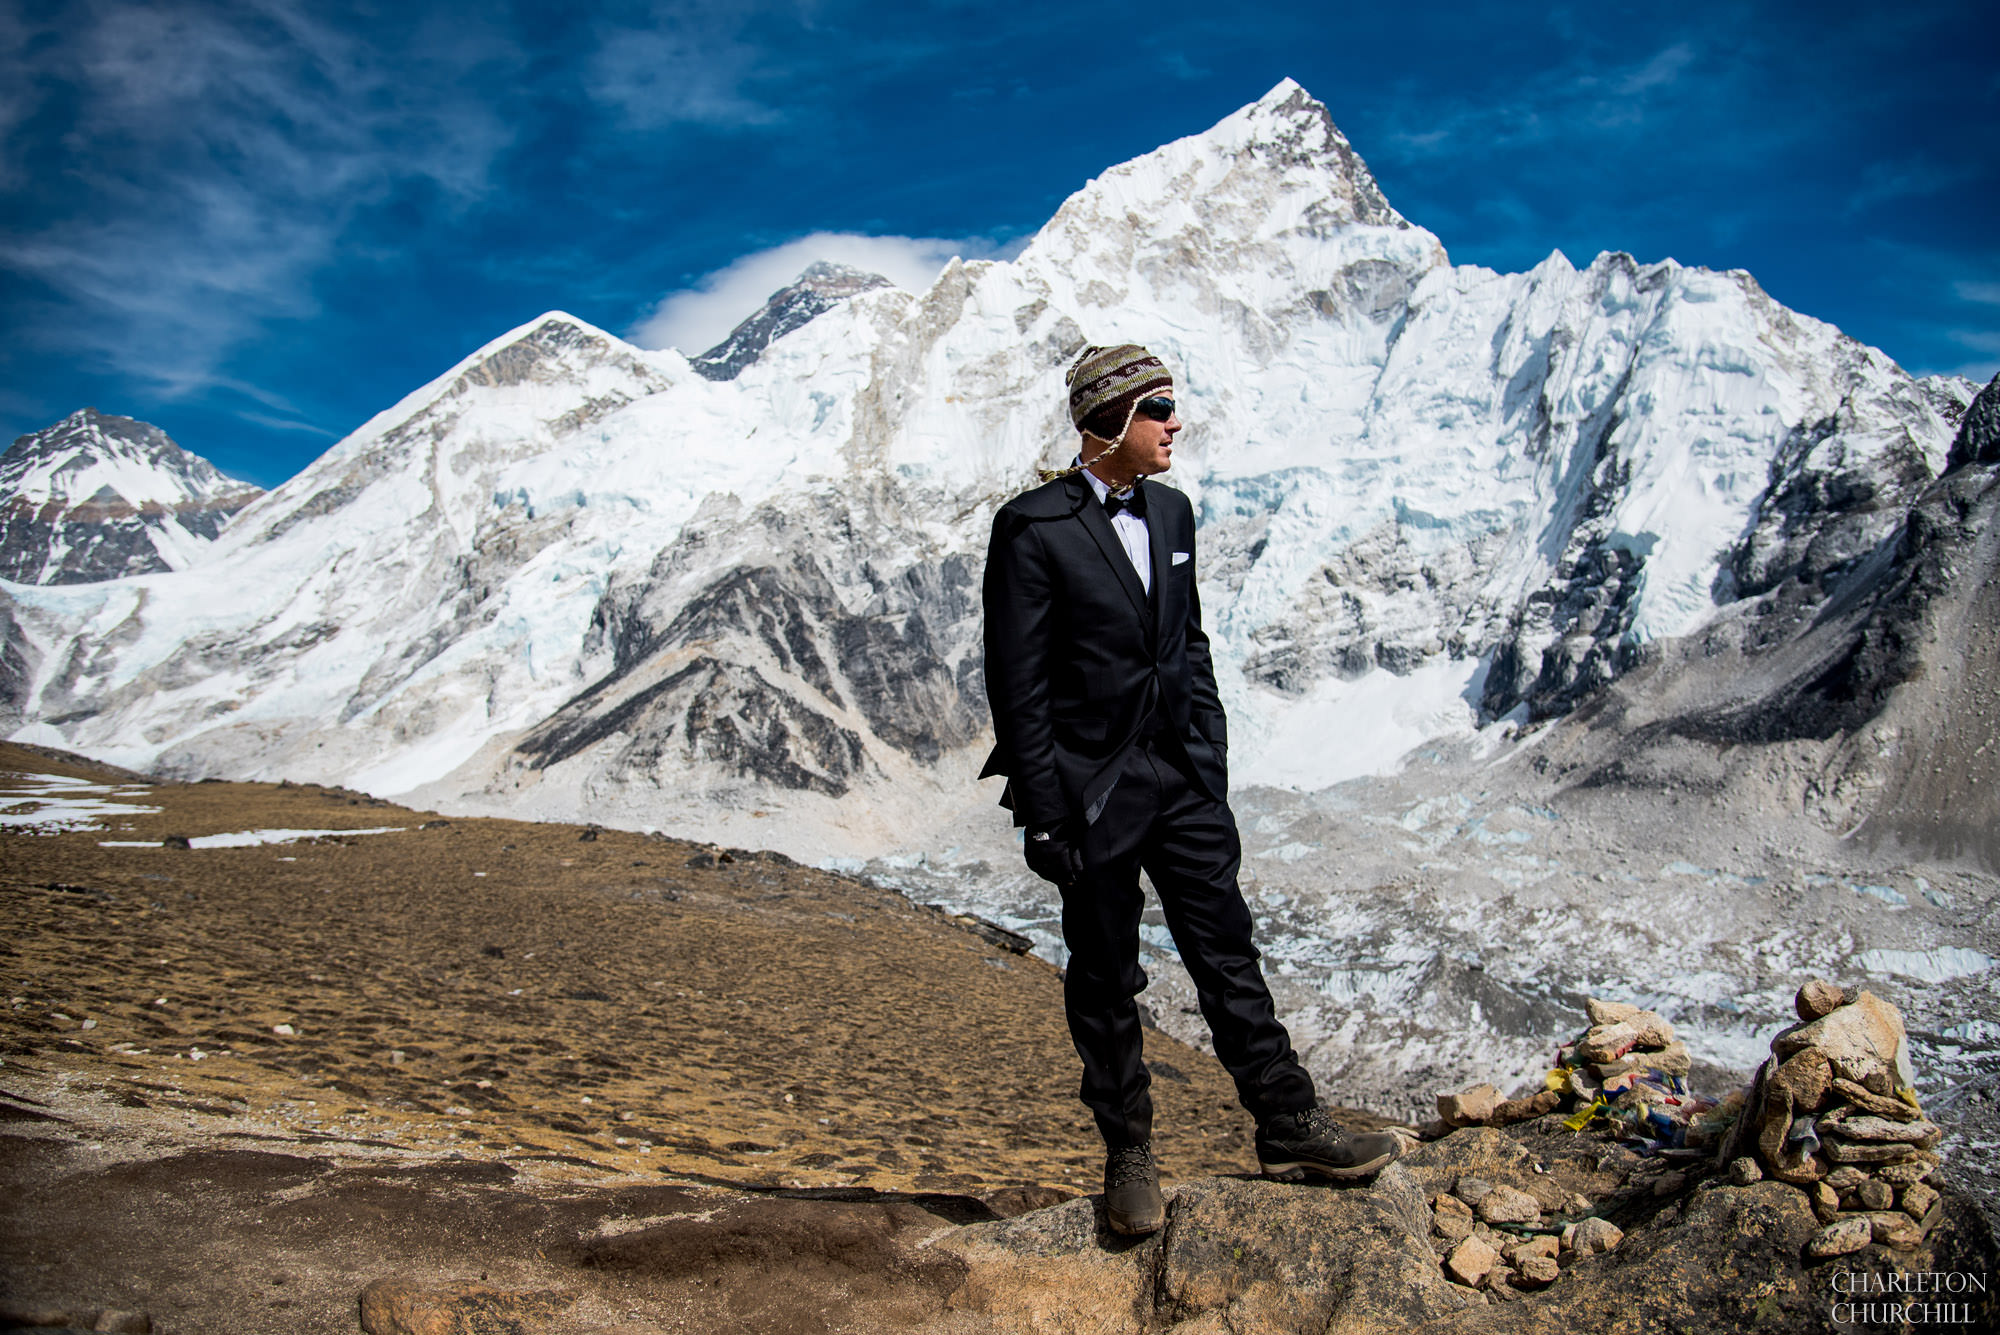 creative groom photo on adventure wedding mt everest